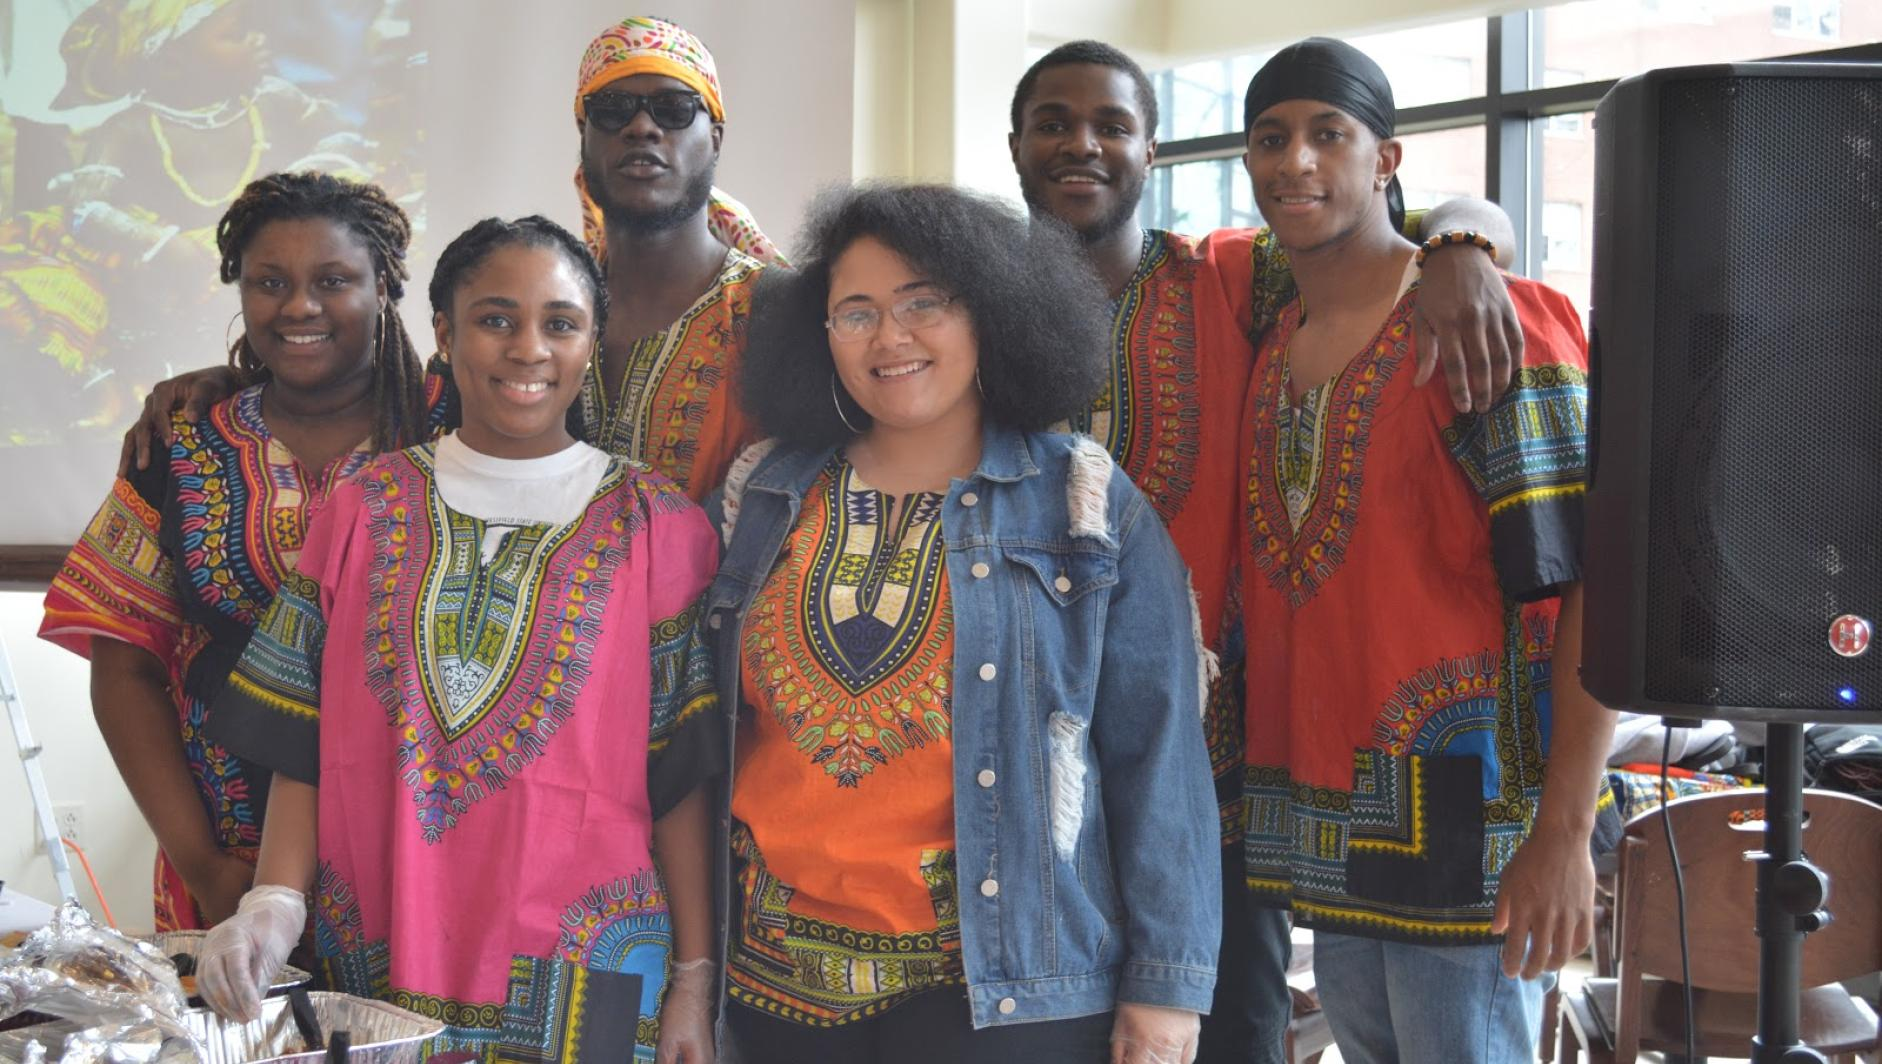 A group of students celebrate African Cultural Day